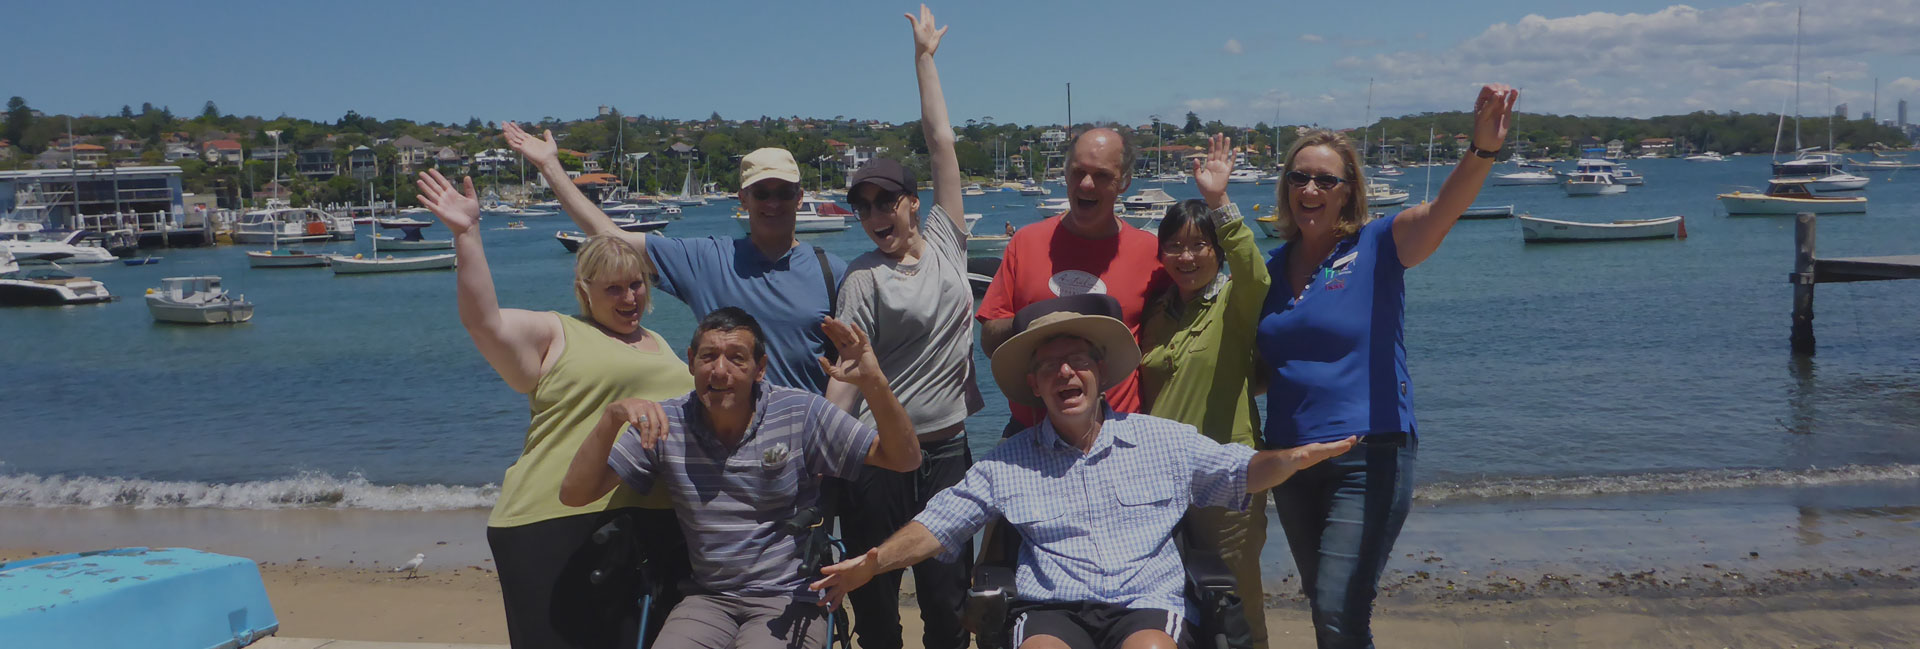 Photo of people with disabilities at Manly Beach